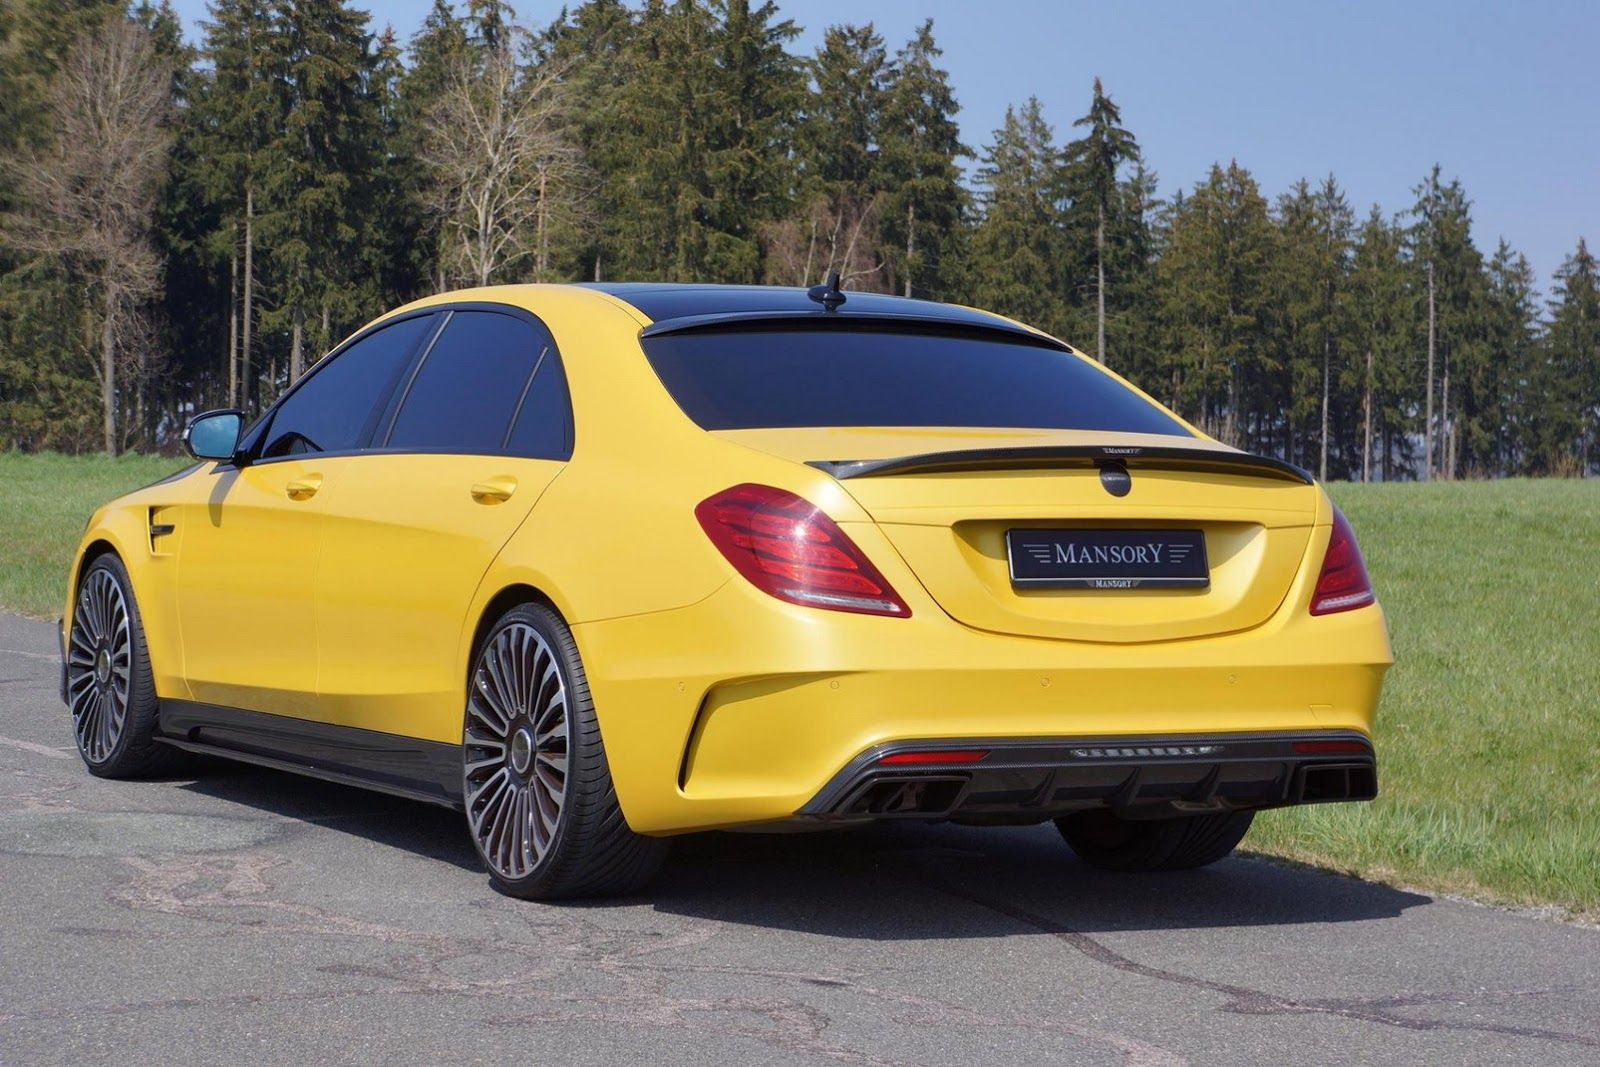 The Mansory Refinement Programme For The New Mercedes S Class Amg S63 Description From Germancarforum Com I Searched For Benz S Mercedes S Class Amg Mercedes